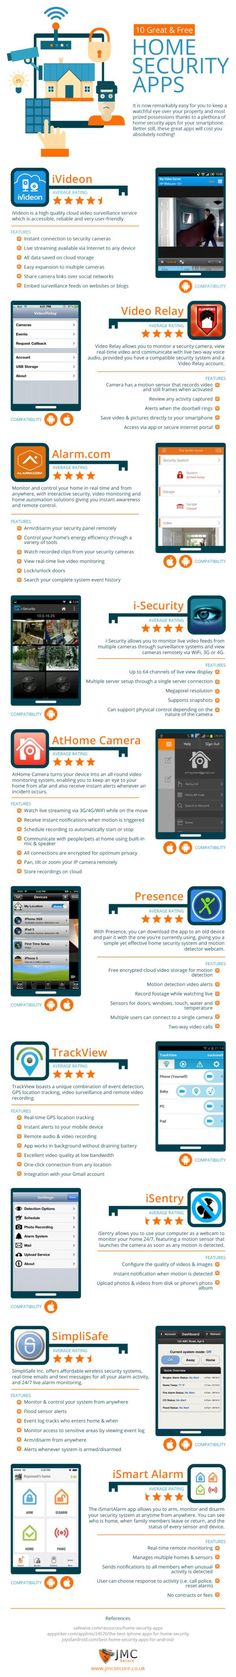 This detailed infographic lists out the ten best home security apps that are not only free, but compatible with majority of the systems we've reviewed previously on SecurityGem. Some of the apps listed are new and are worth checking out while others have been featured in our reviews of the systems they complement.